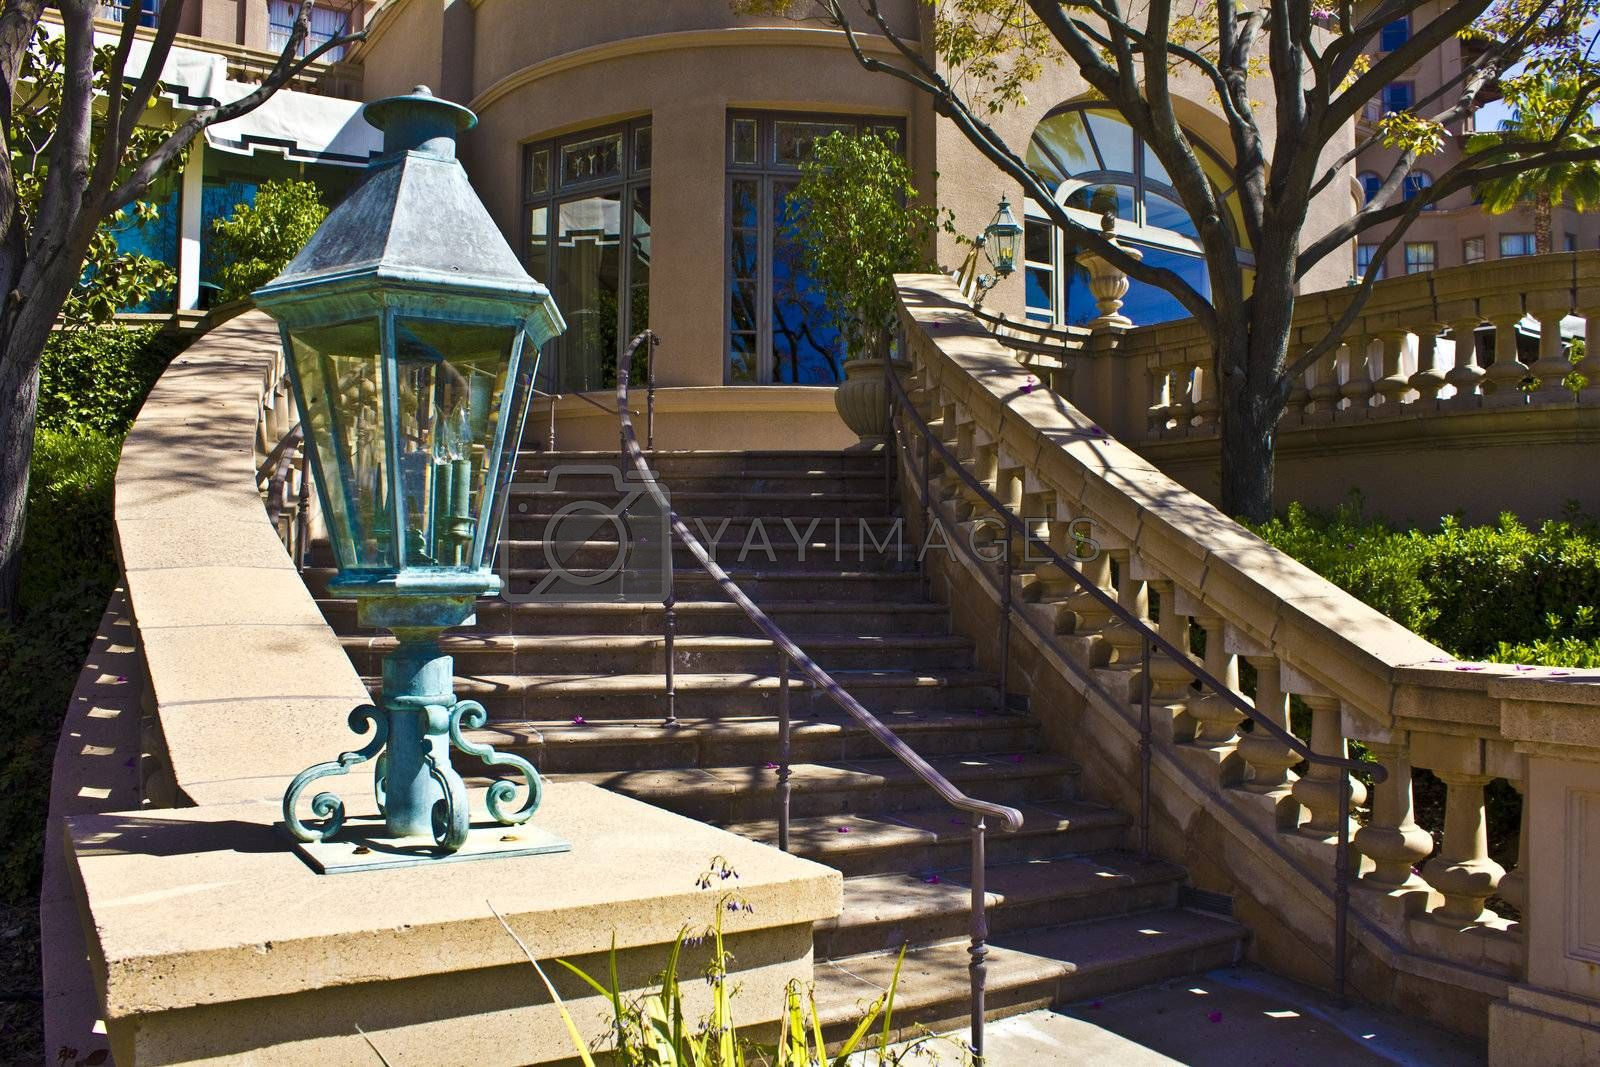 An image of an elegant outdoor stone staircase.